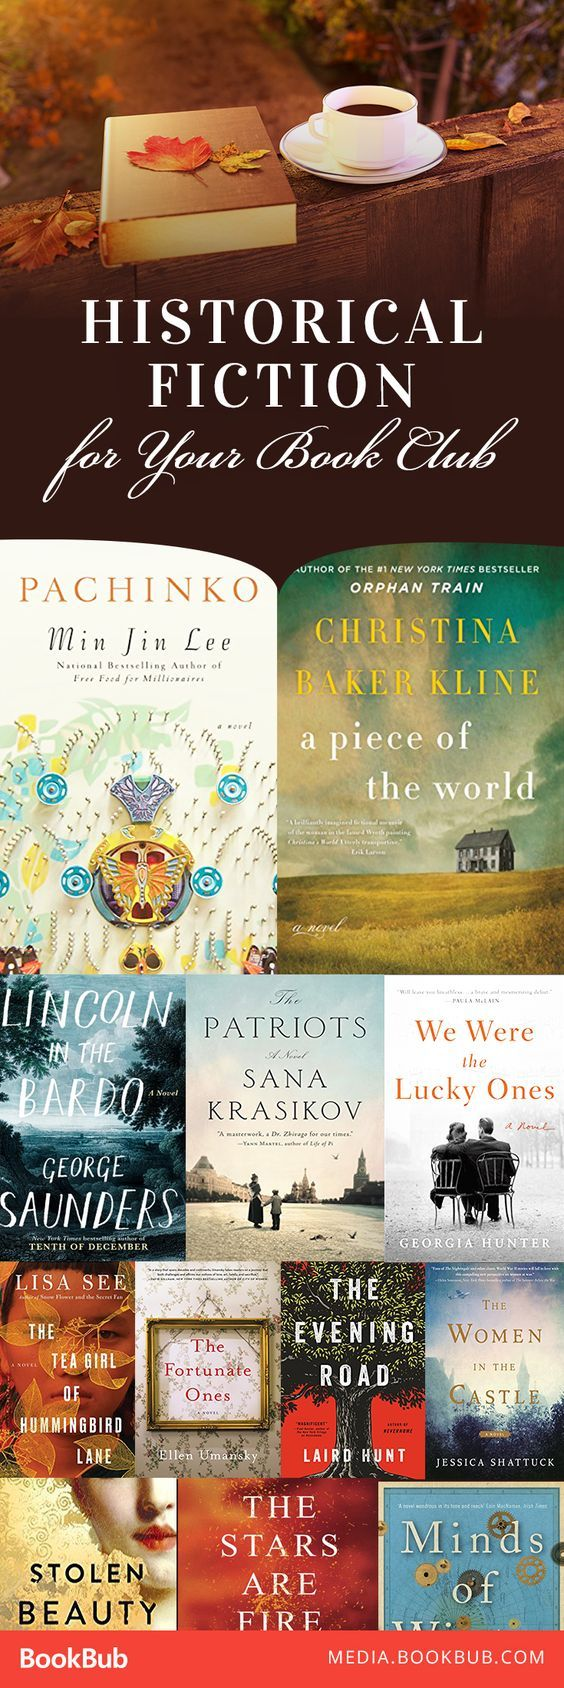 15 Historical Fiction Reads Your Book Club Will Love